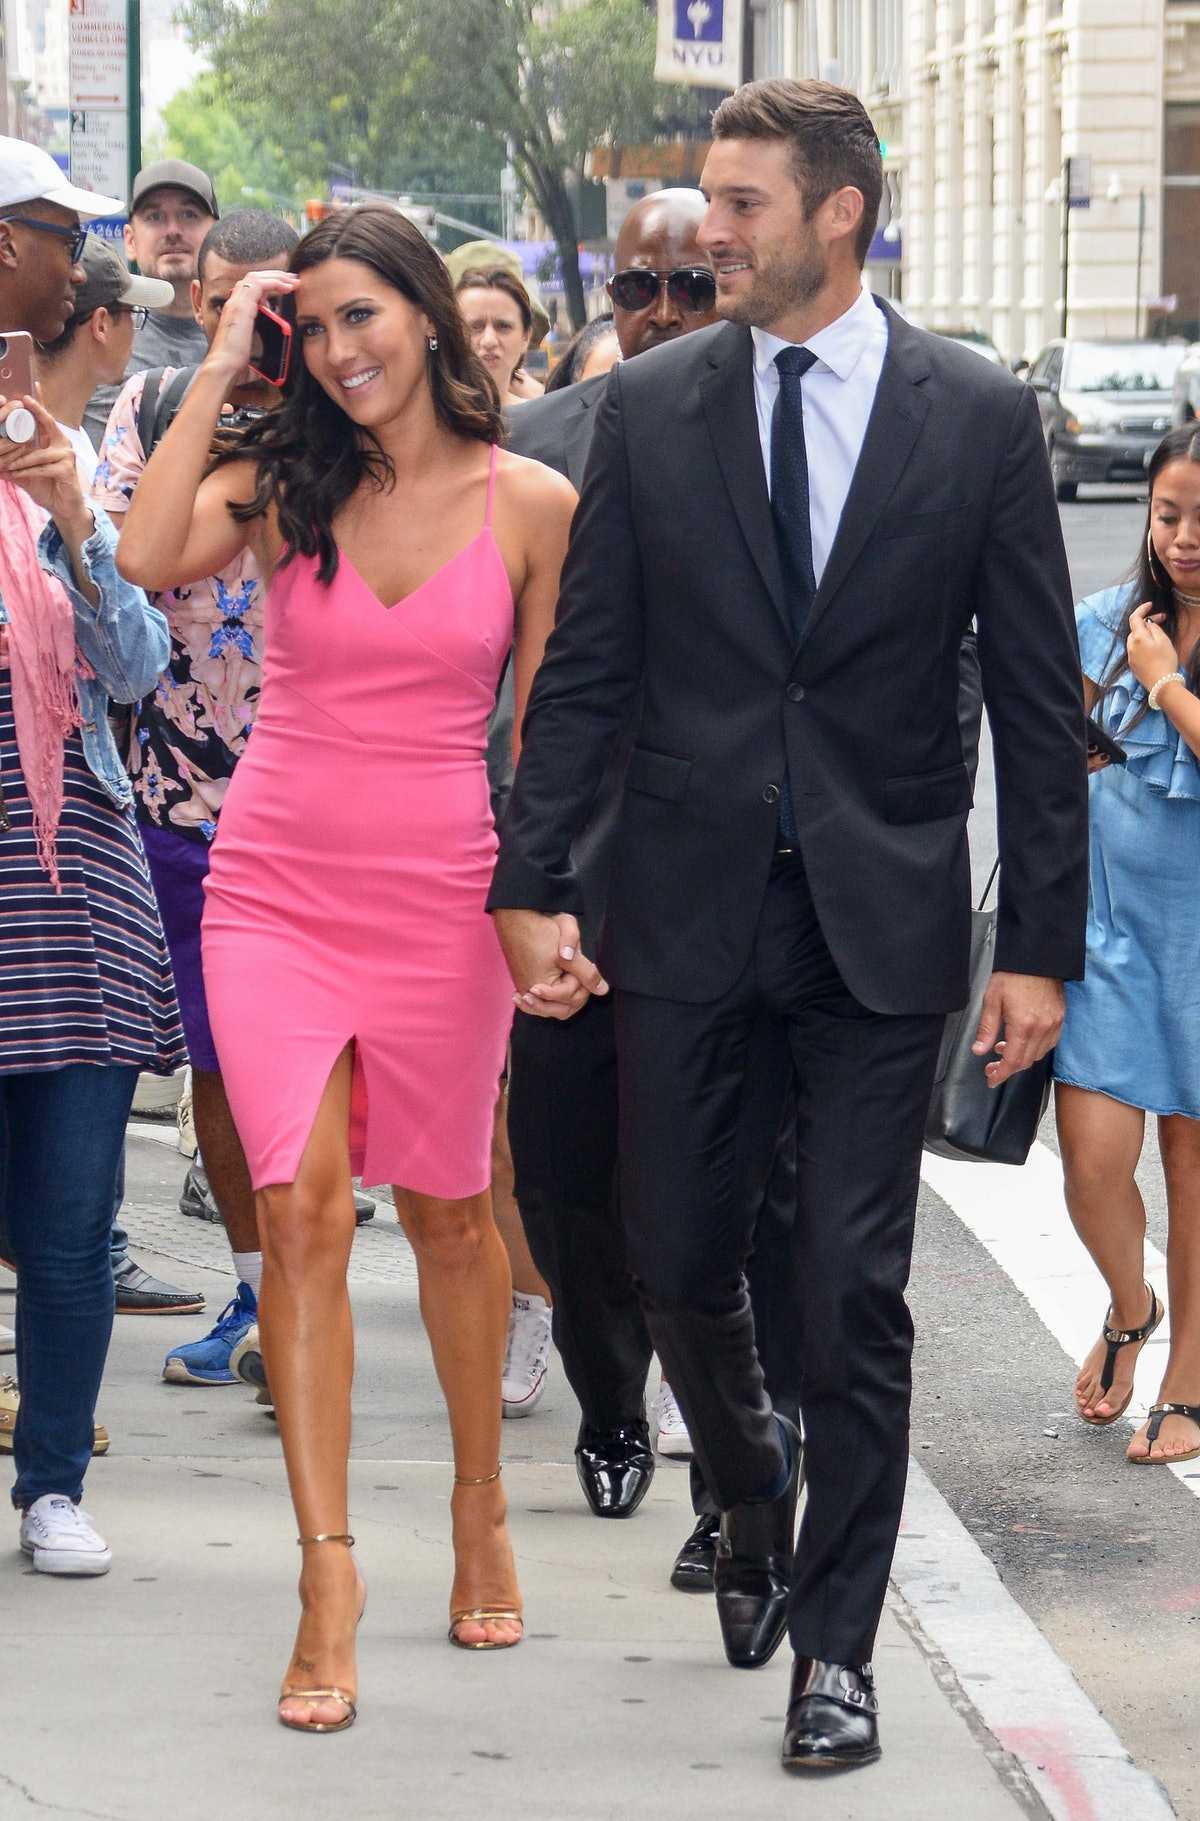 Becca Kufrin's relationship history is full of confusing ups and downs.